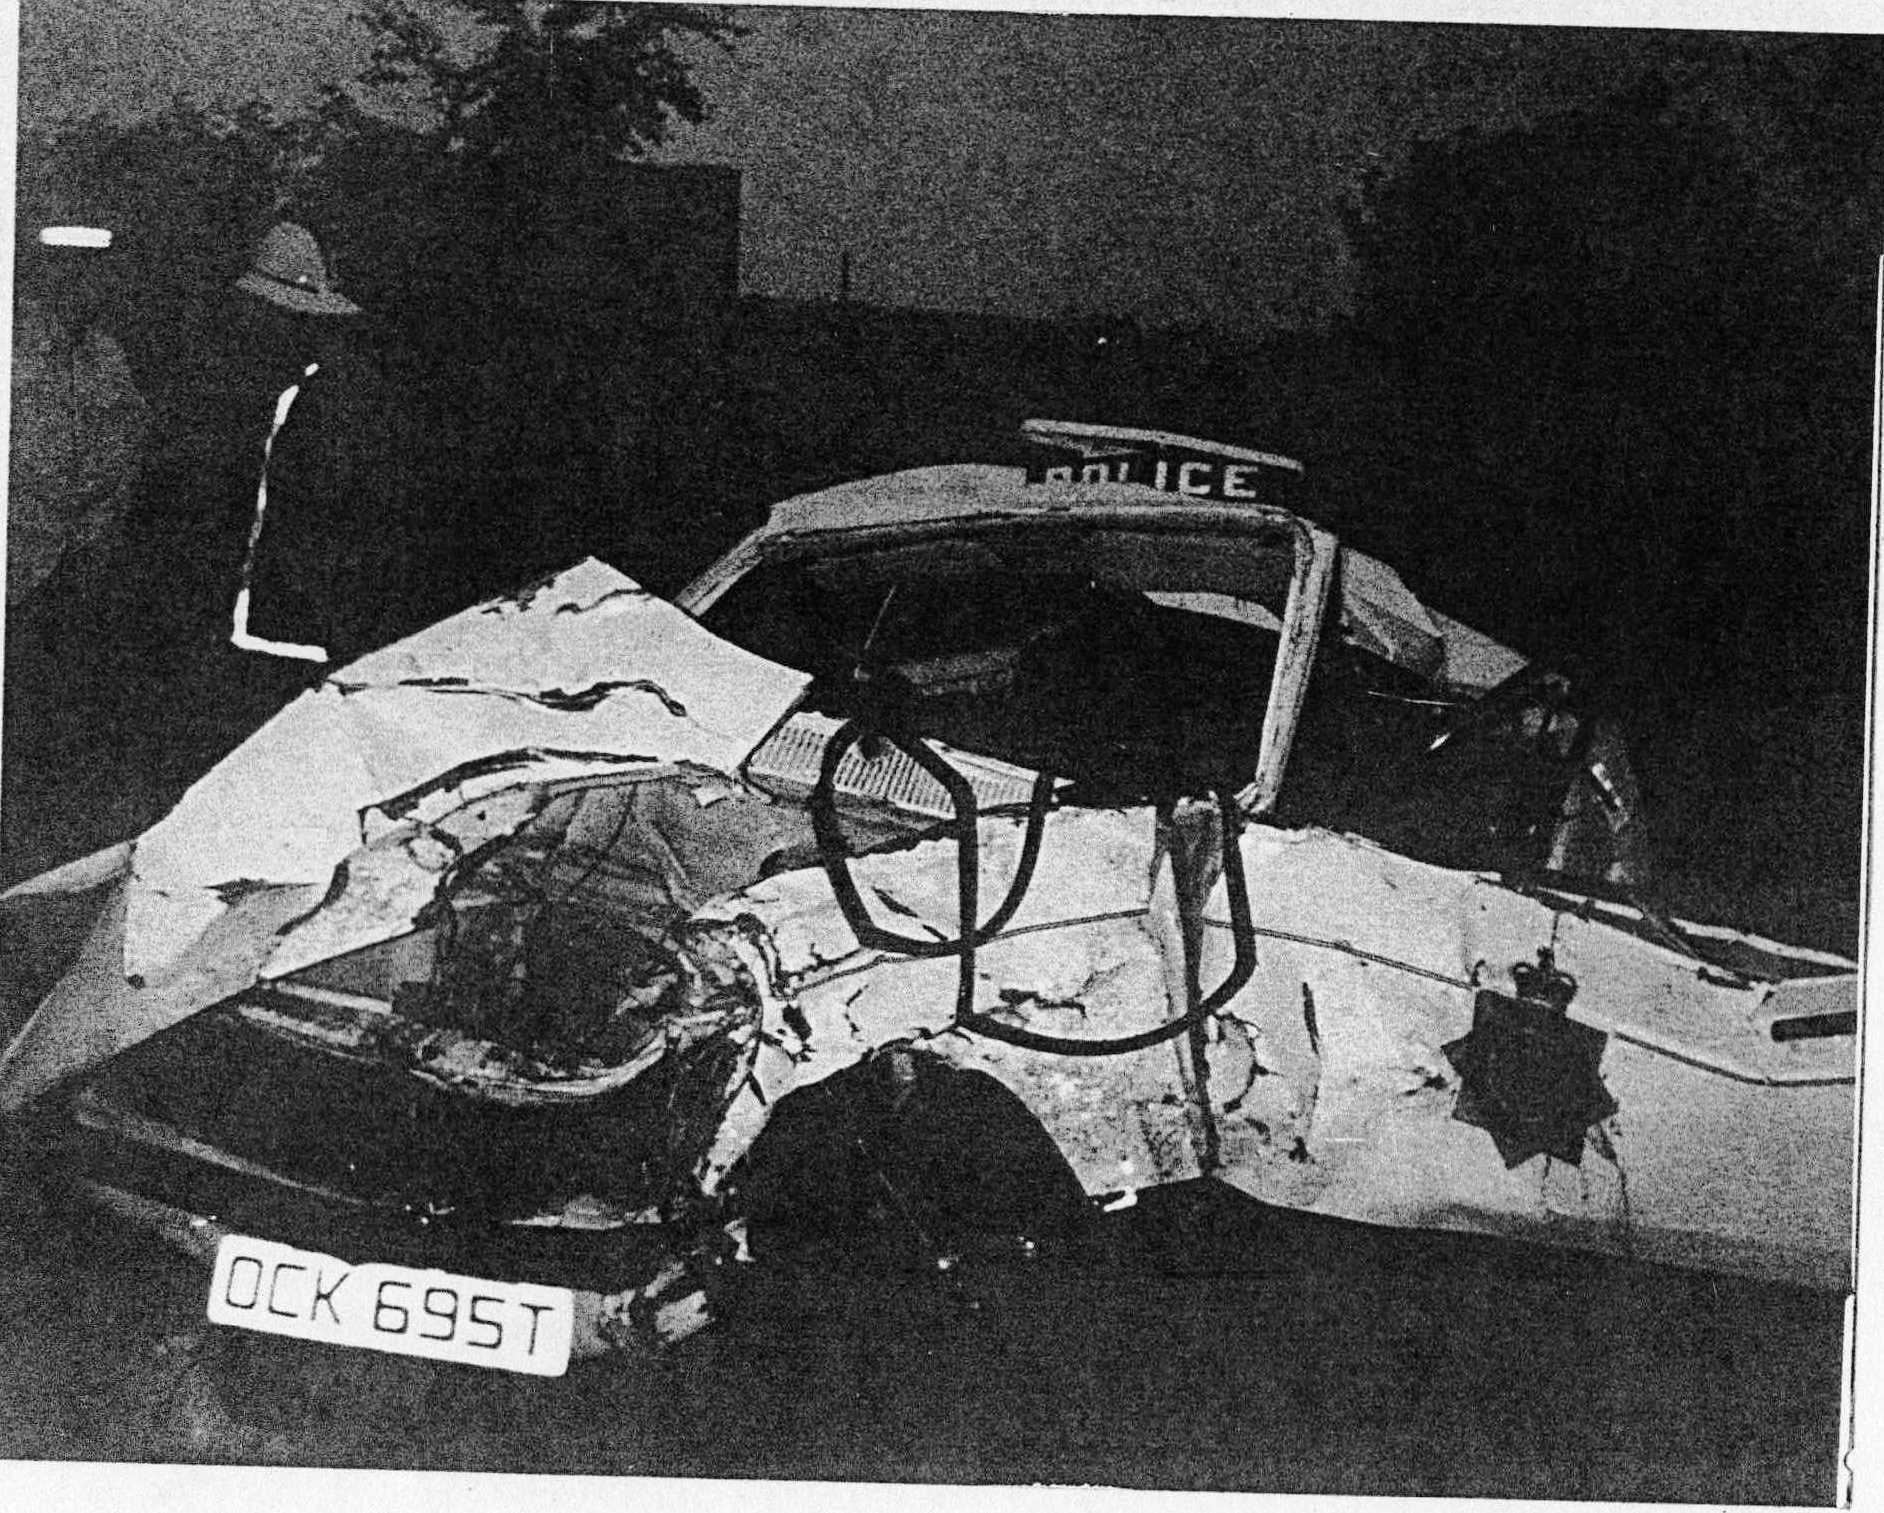 Police Car Road Traffic Accident